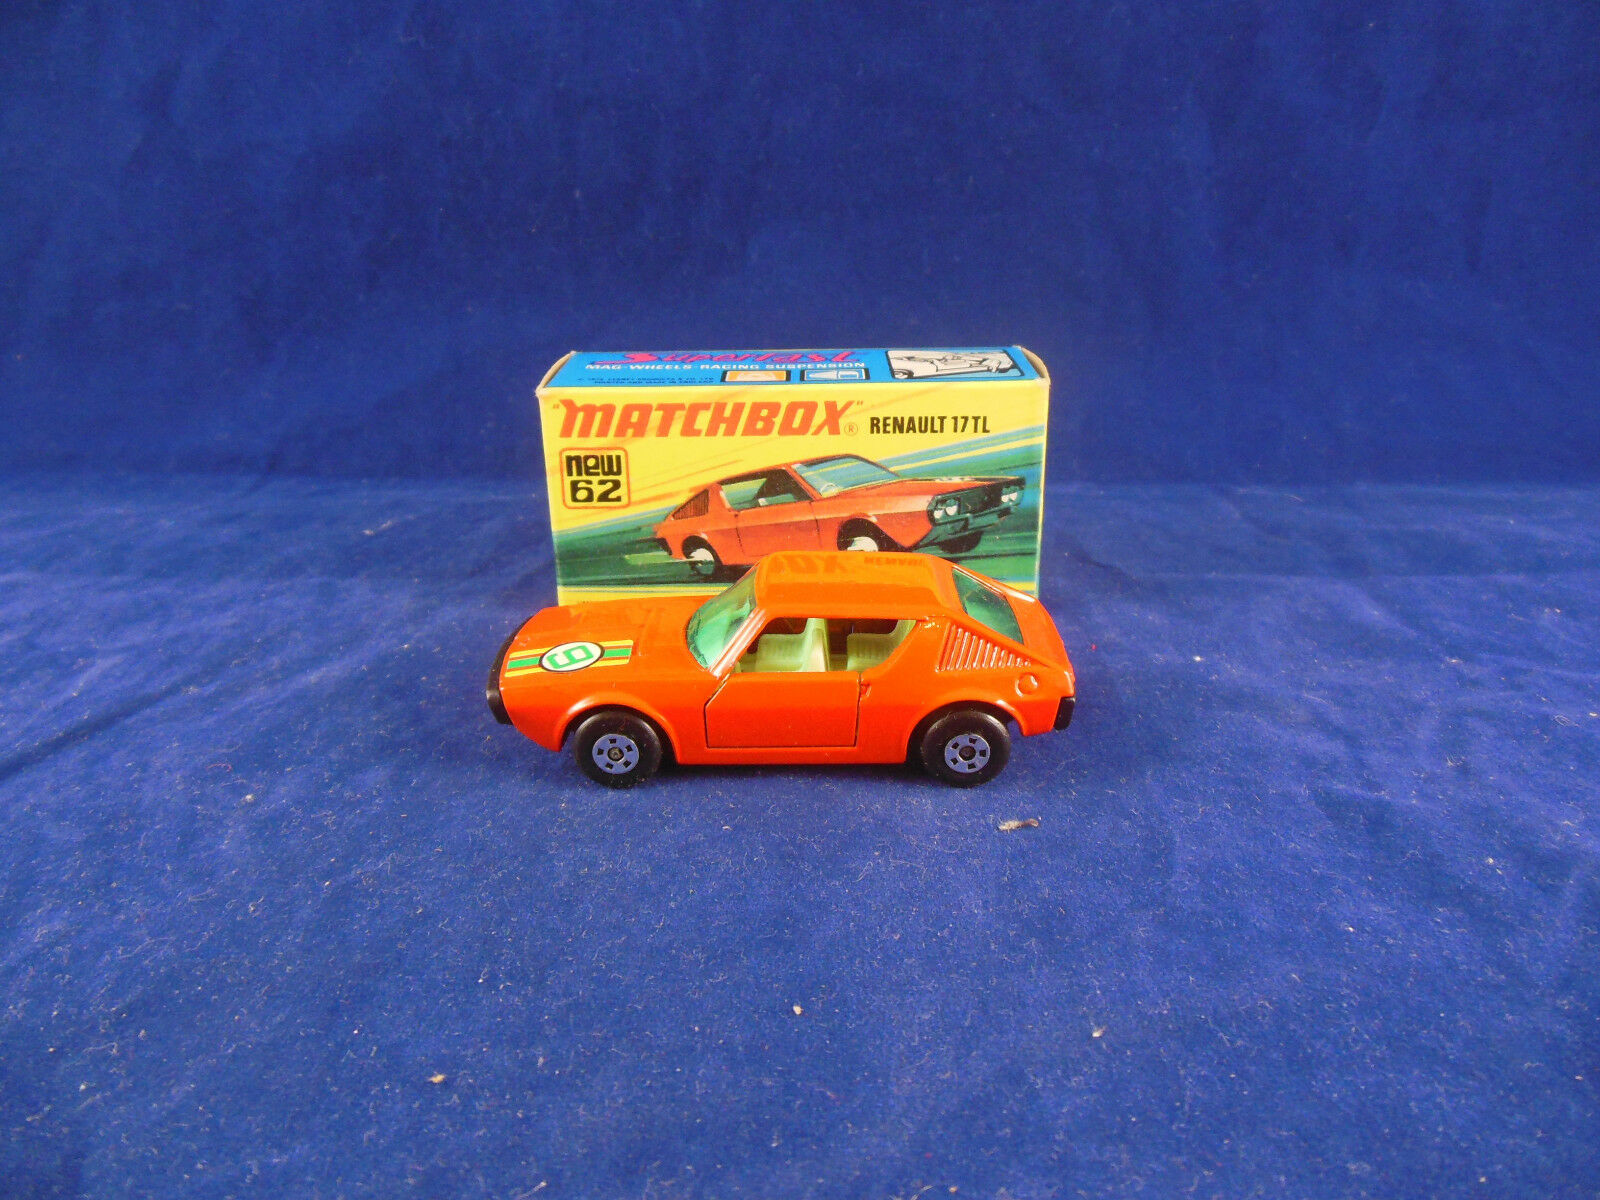 Scarce Matchbox Superfast MB - 62 c Renault 17TL in orange Racing no. 9